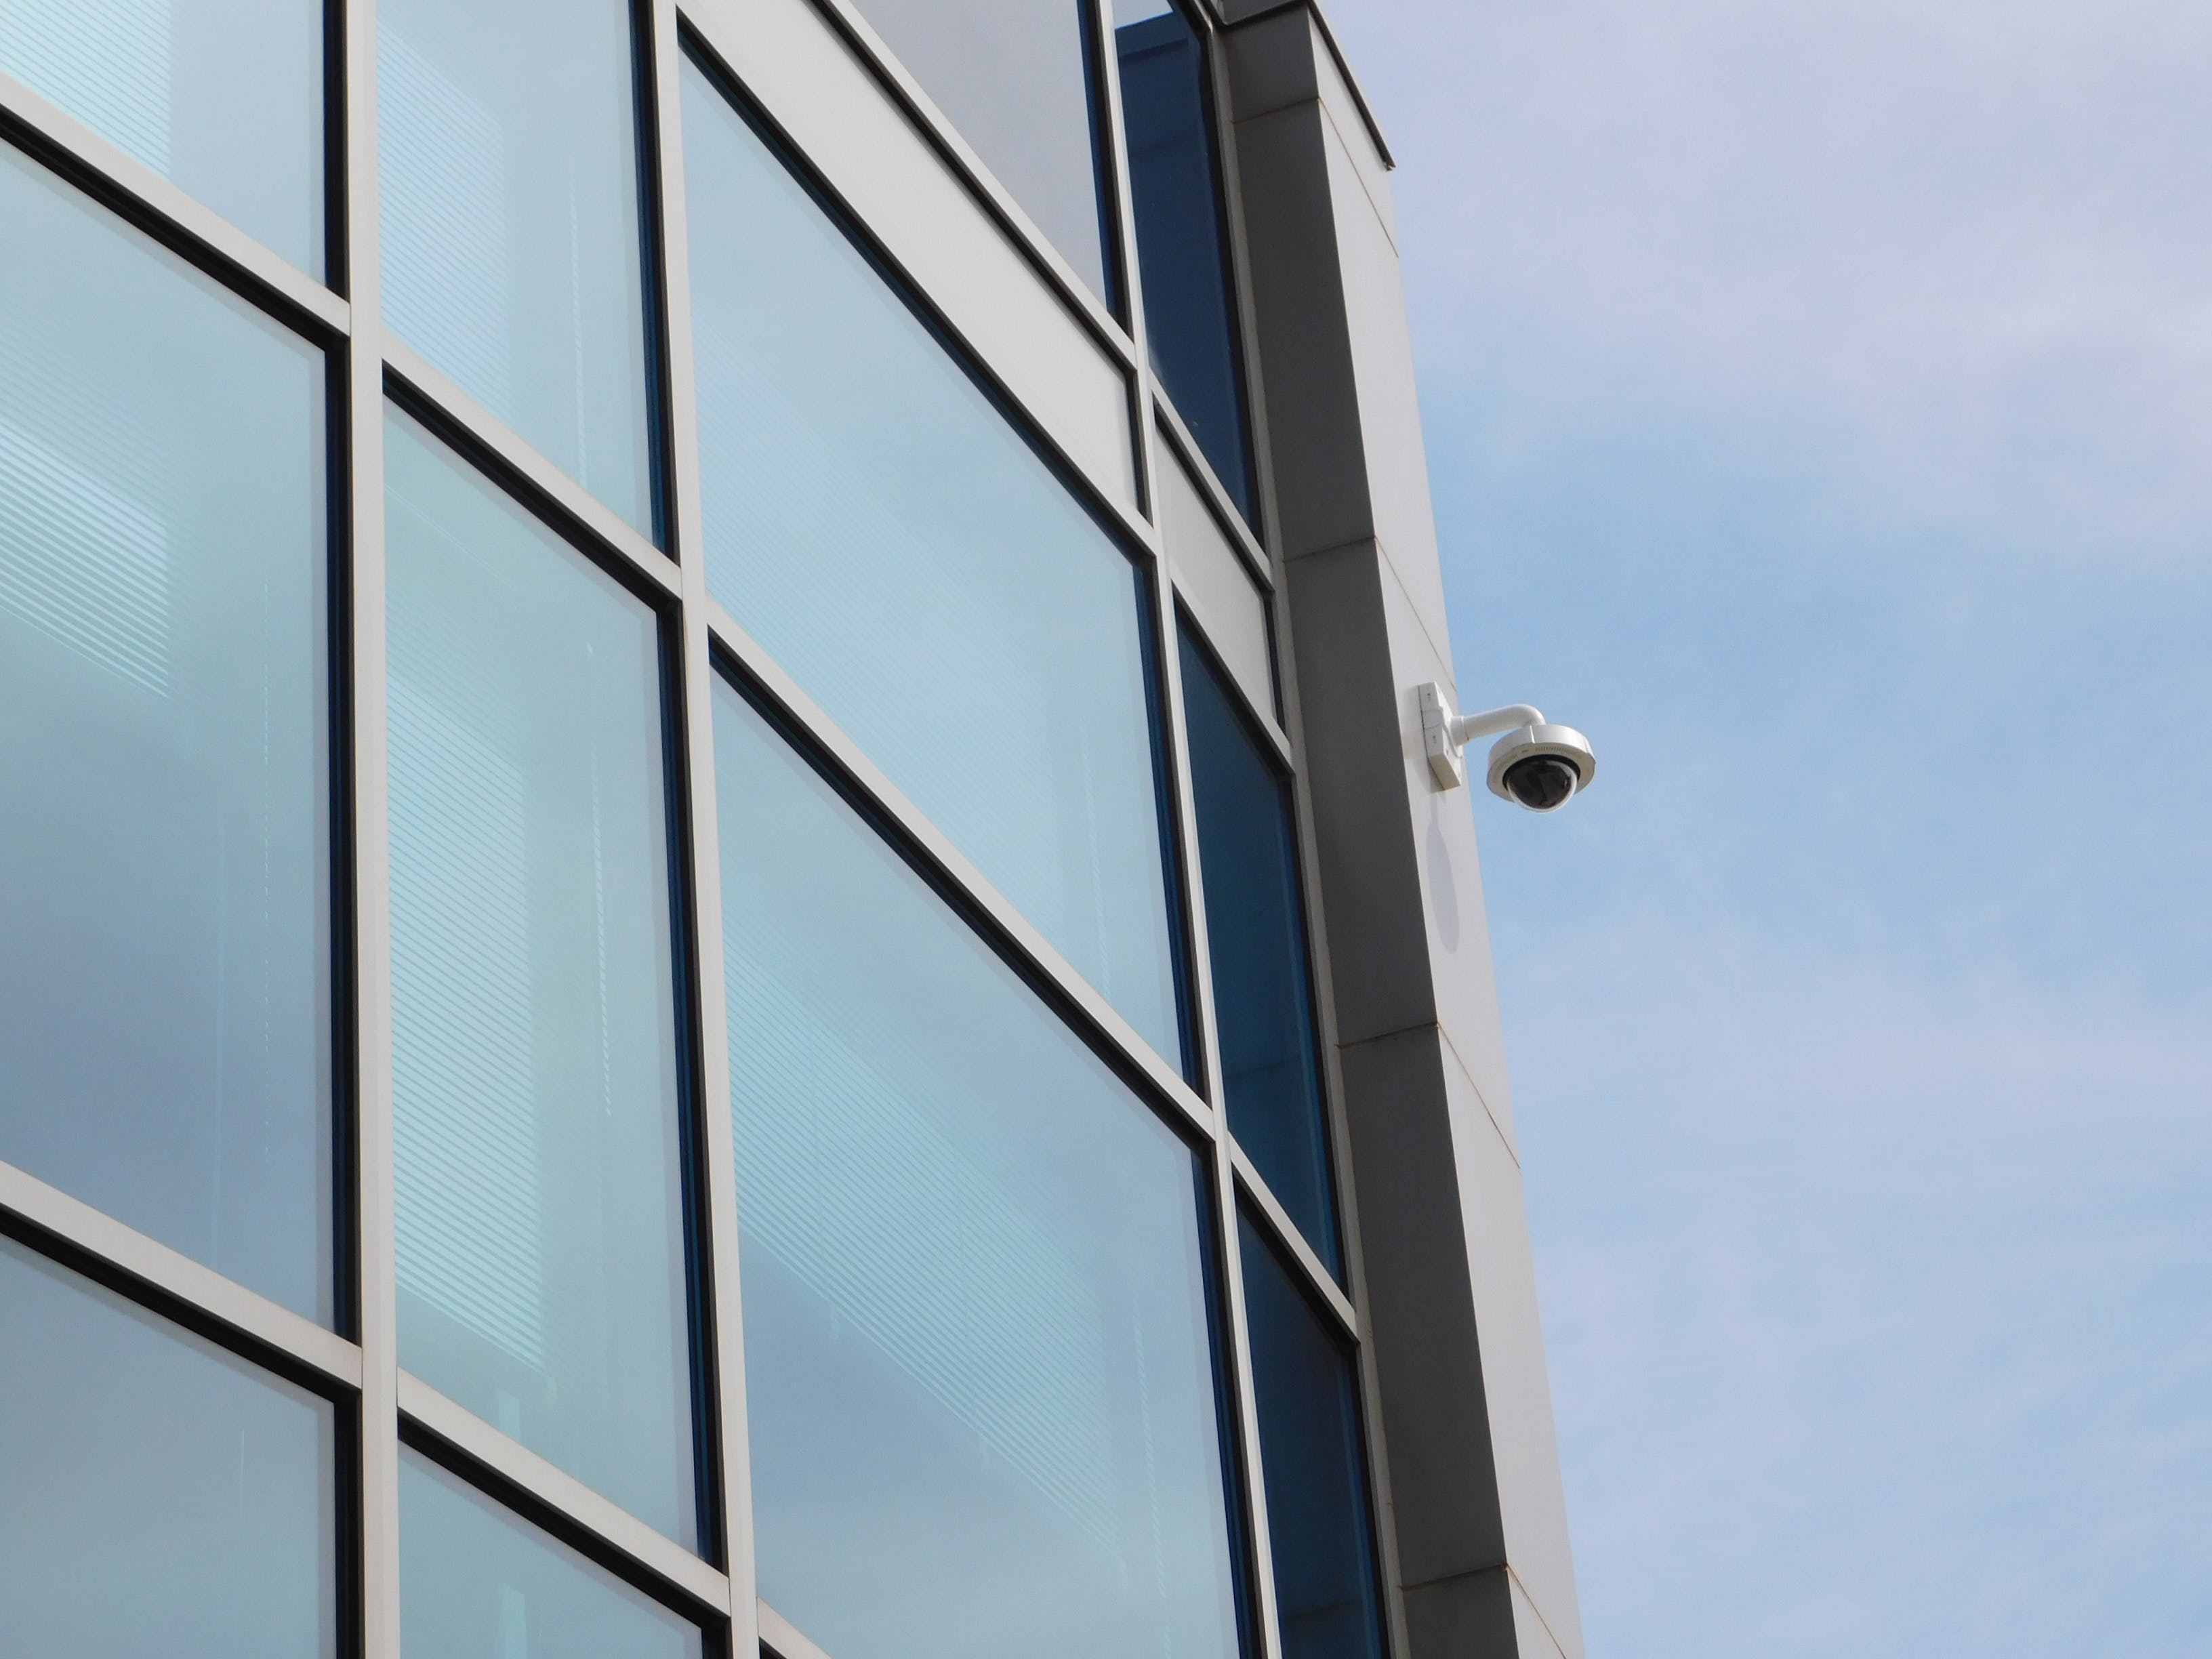 Free stock photo of architecture, camera, glass windows, security camera